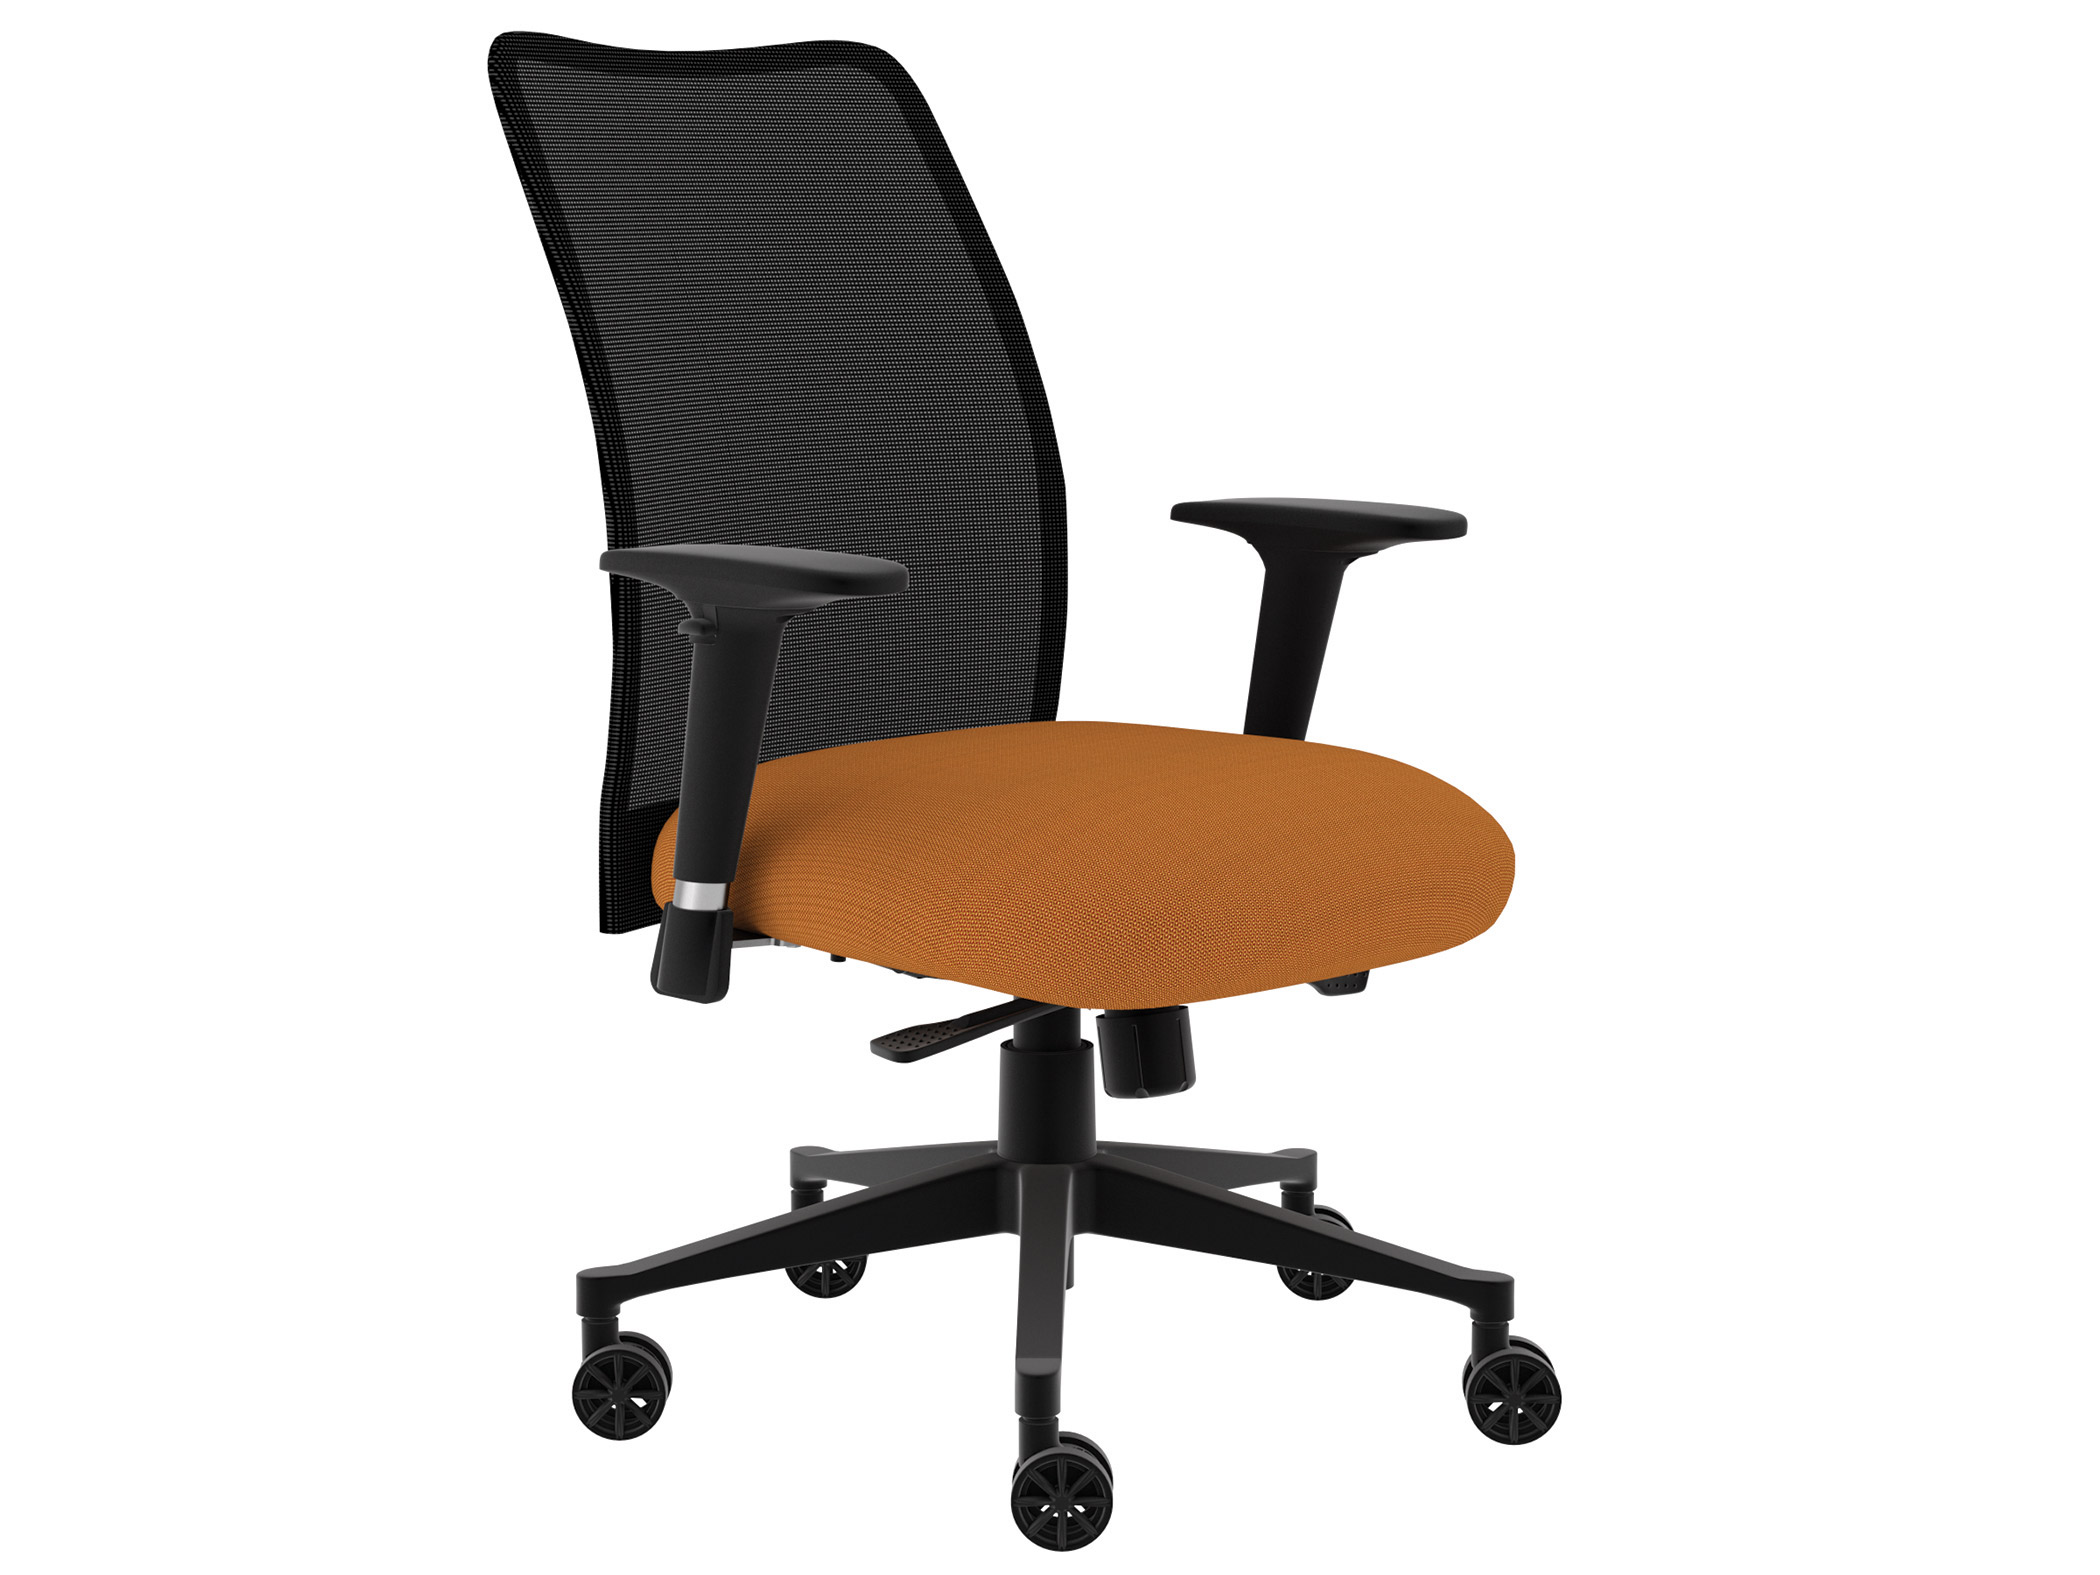 Orange Office Chairs Orange Office Chair Office Task Chairs Chairs For Office